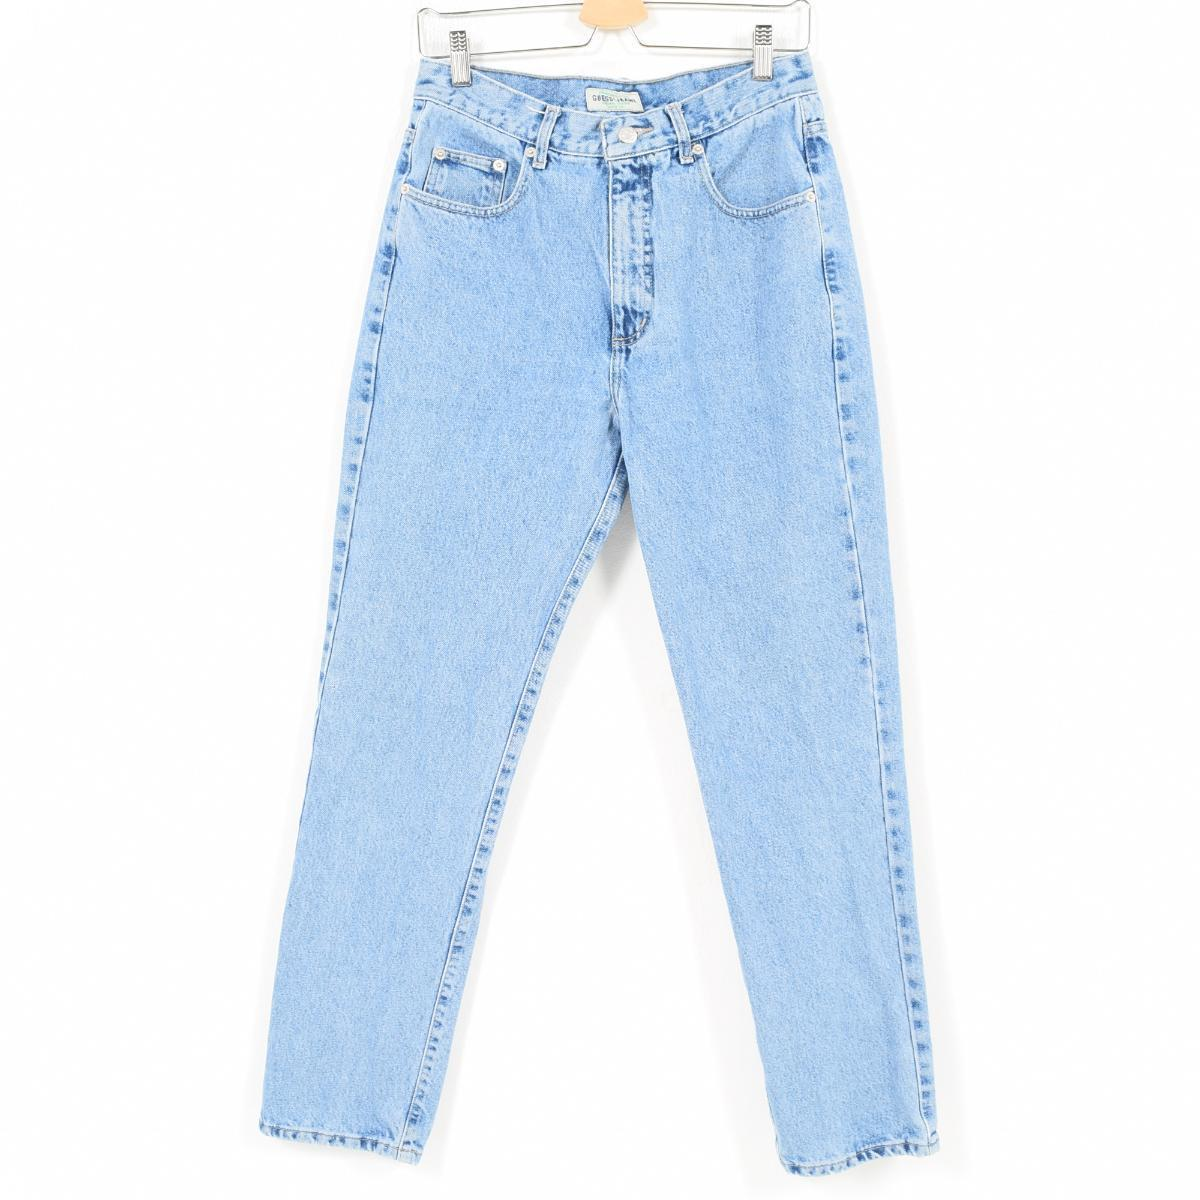 f862eecd43a 90s ゲス Guess JEANS tapered jeans denim underwear men w30  wal4354